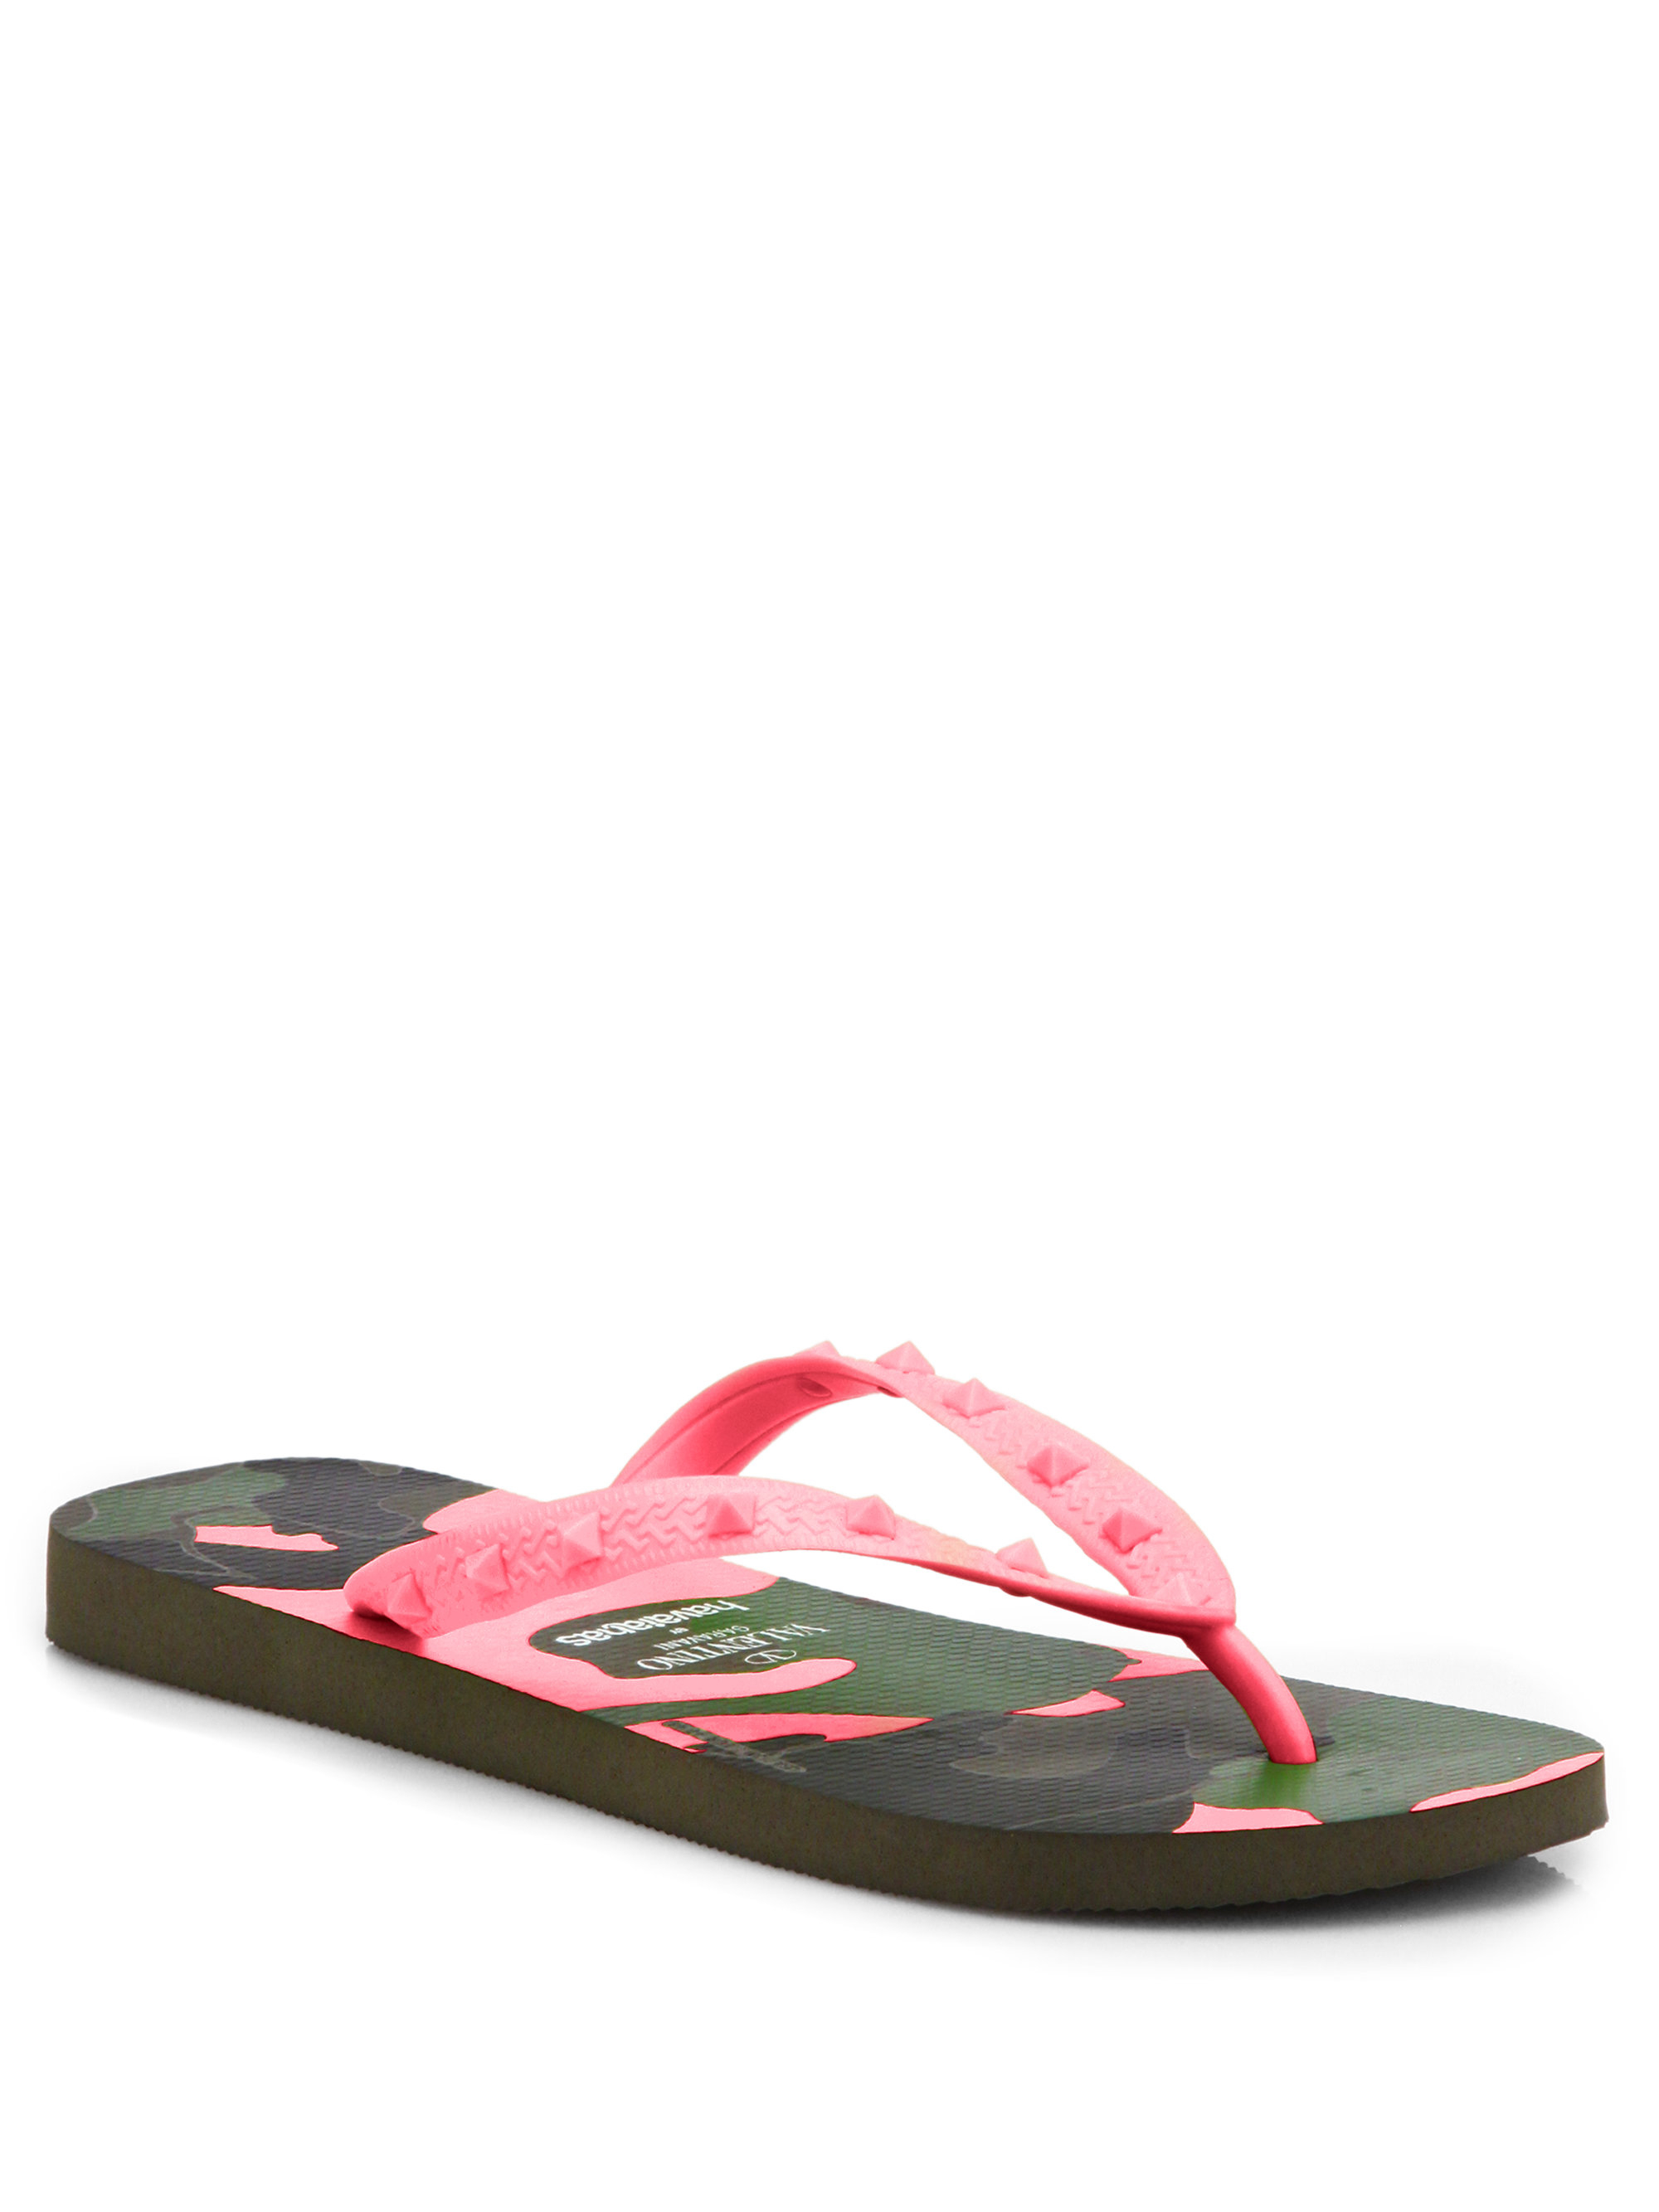 valentino studded flip flops in pink for men lyst. Black Bedroom Furniture Sets. Home Design Ideas